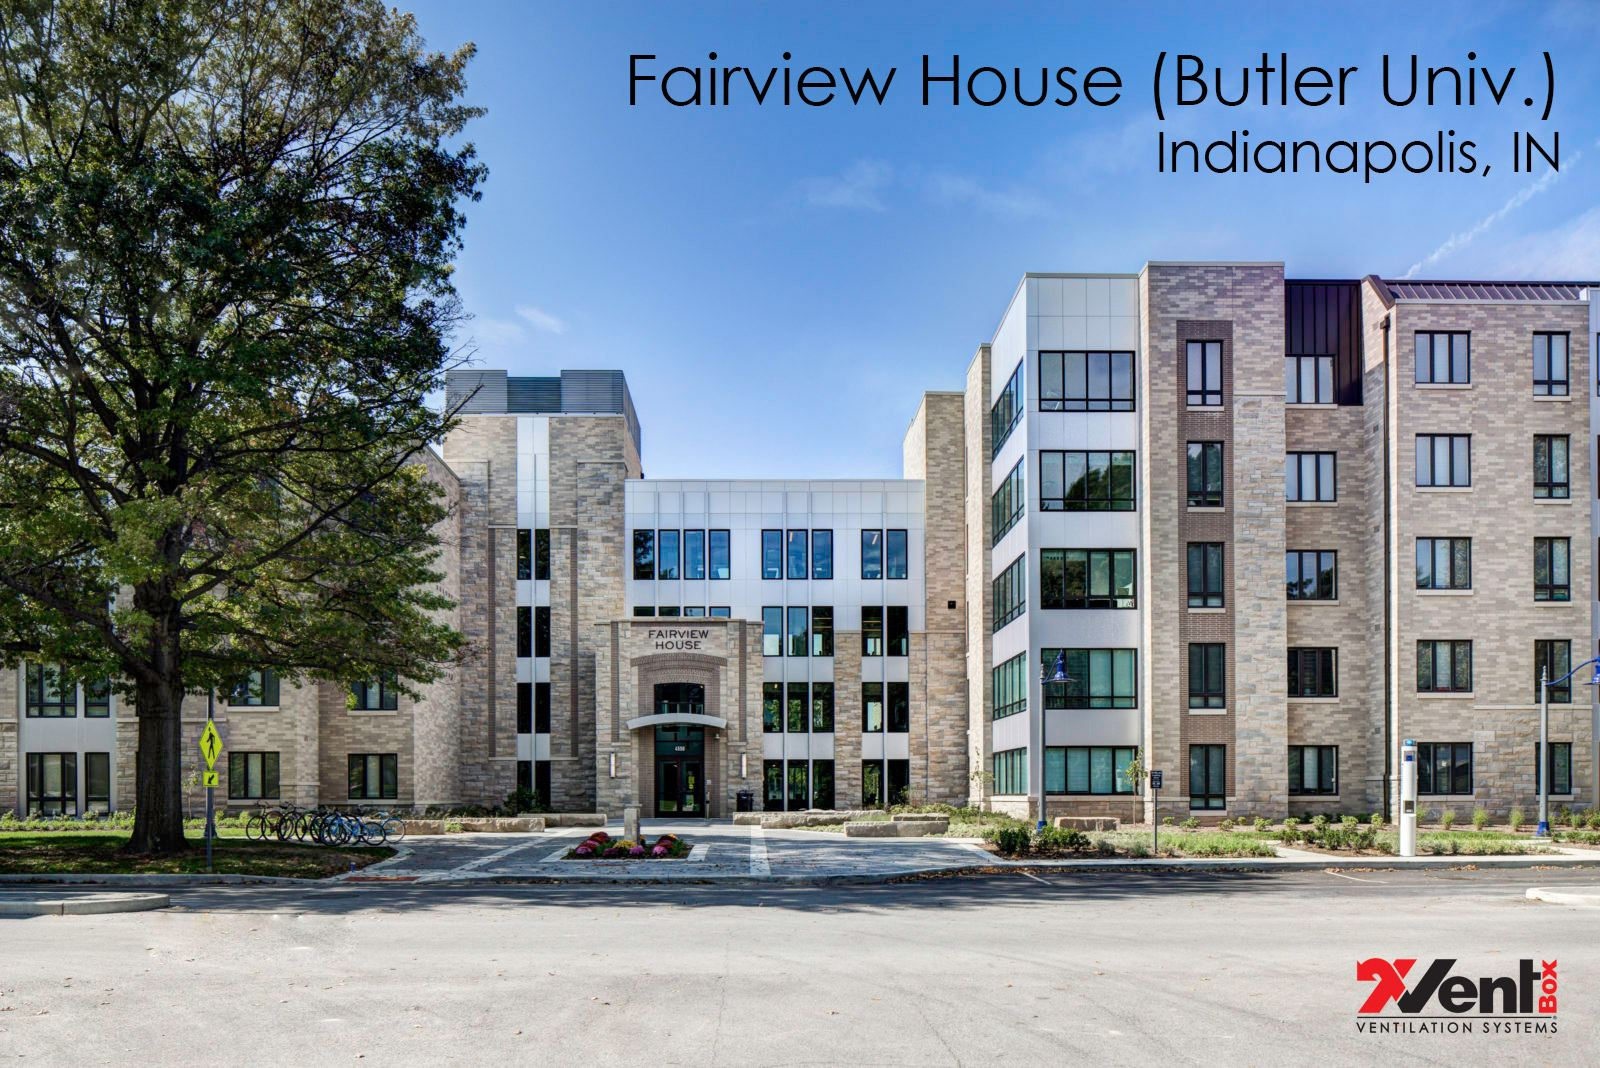 Fairview House (Butler Univ.)